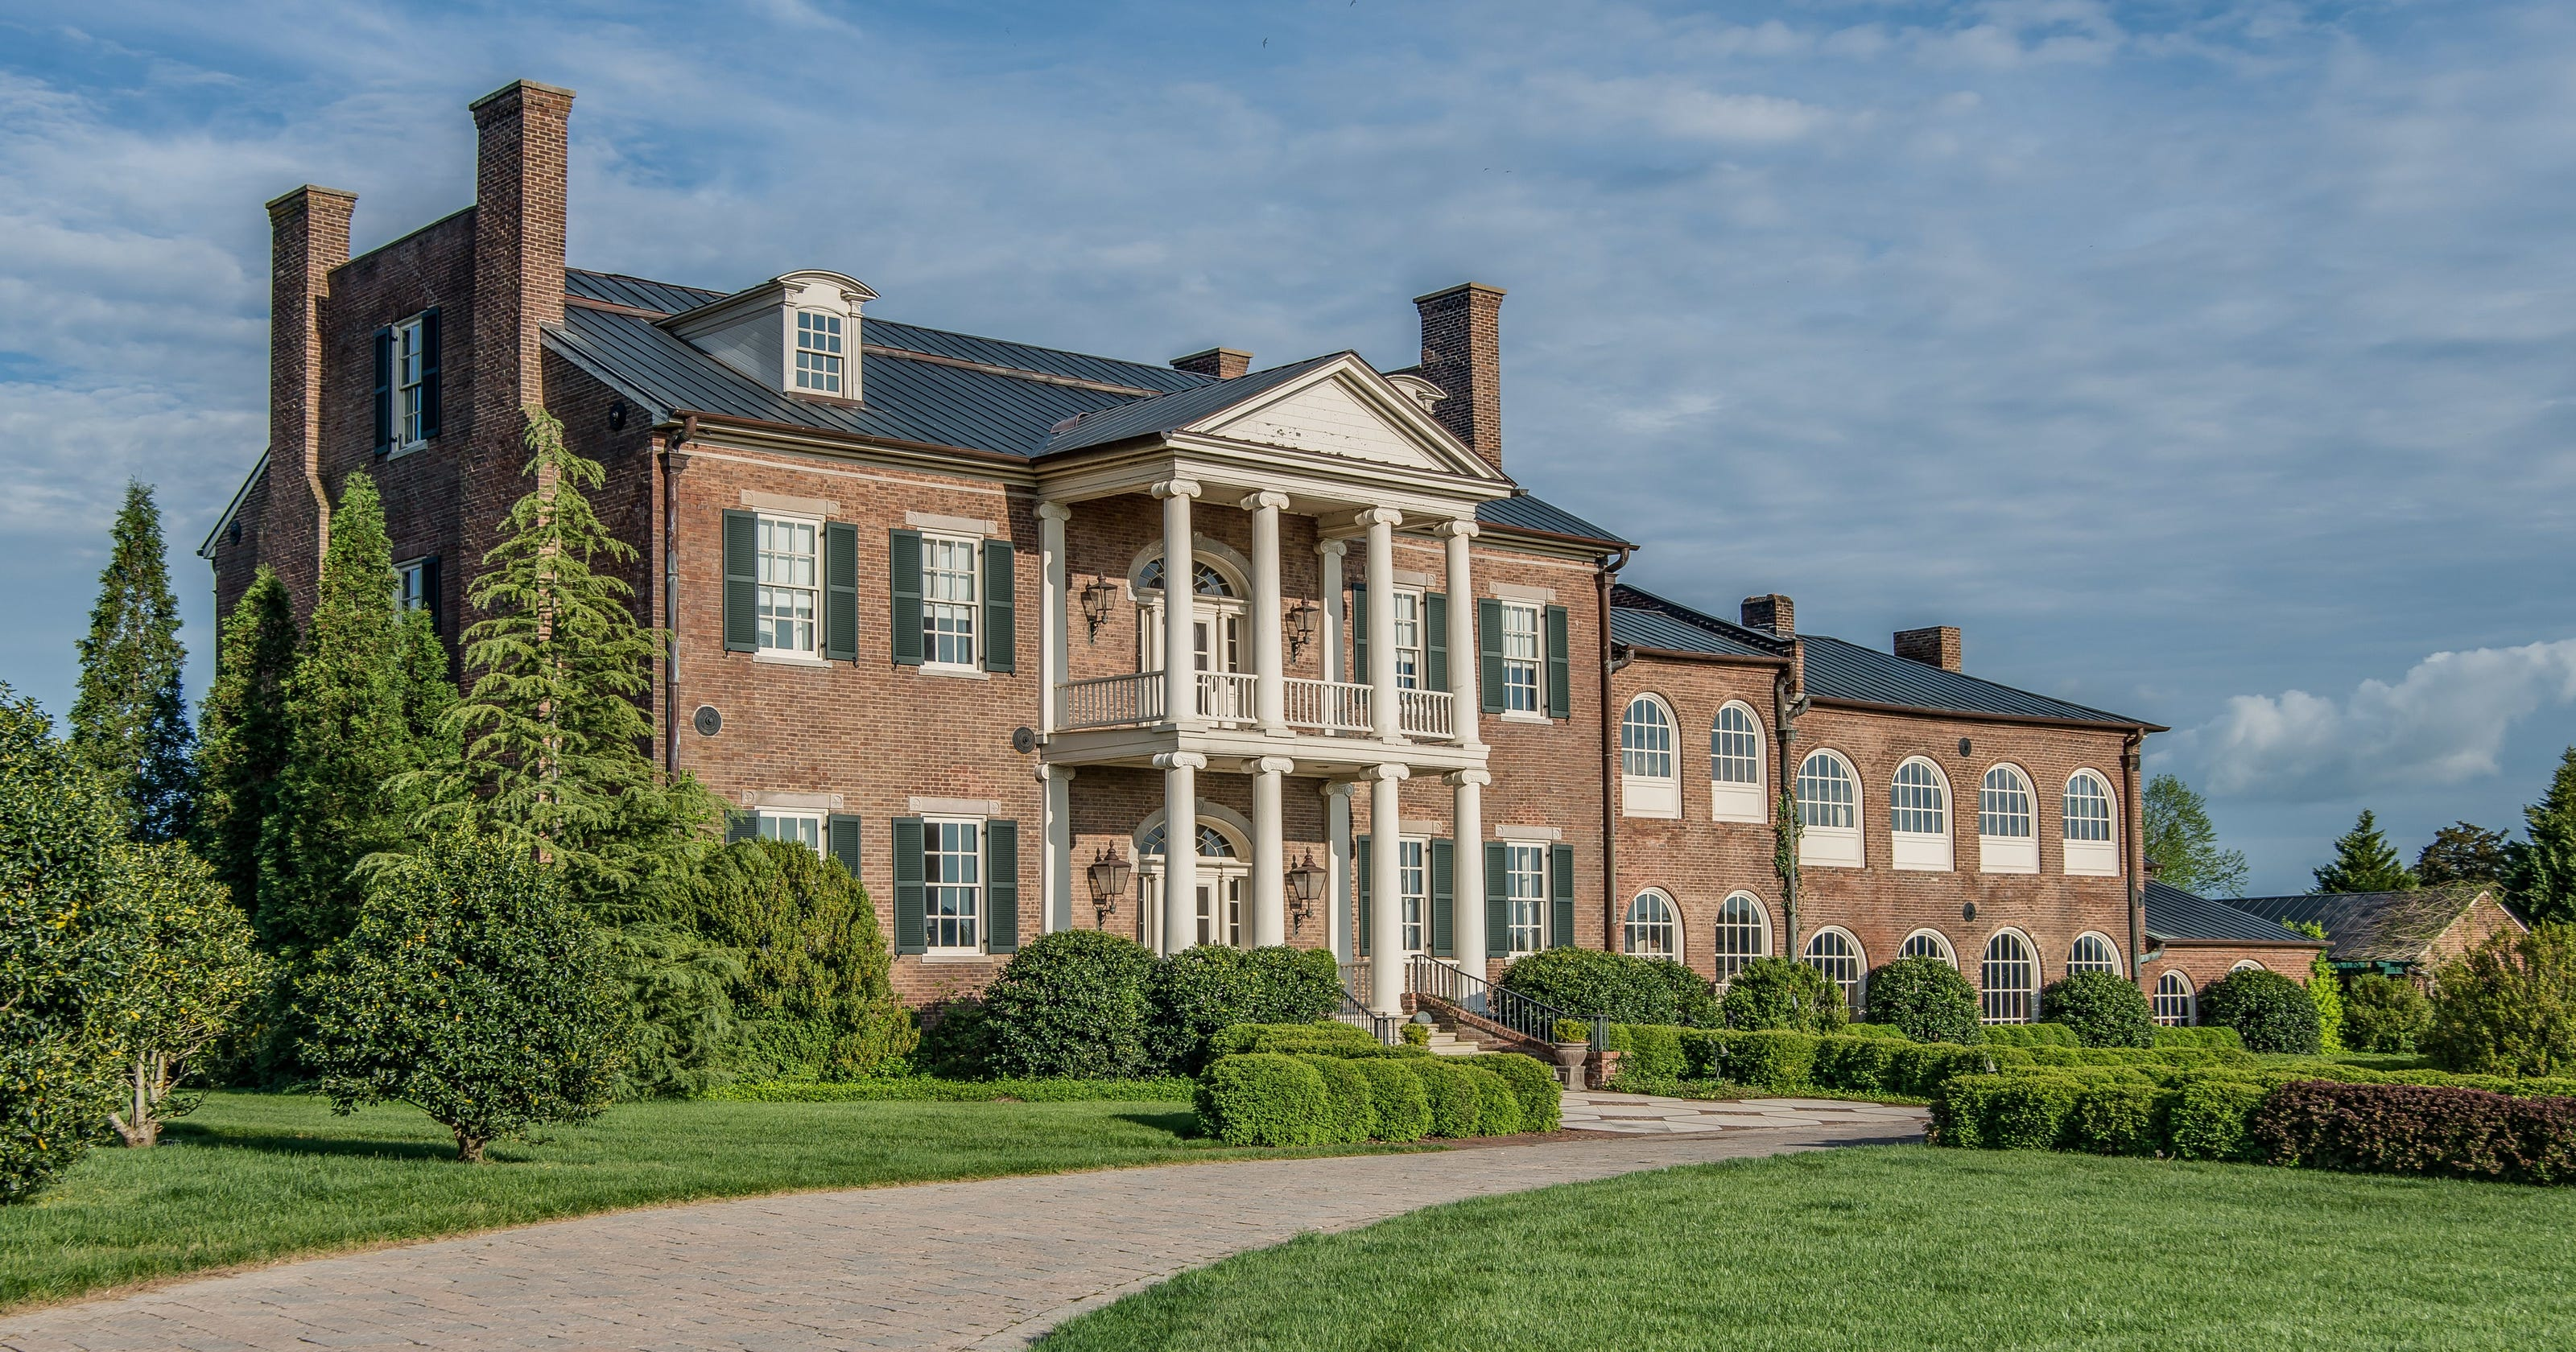 Historic Fairvue mansion listed for $6.9 million on old southern plantations, old slavery plantations, old florida plantations, beaufort south carolina old plantations, old new orleans plantations, old savannah plantations, old hawaii plantations, old natchez plantations,